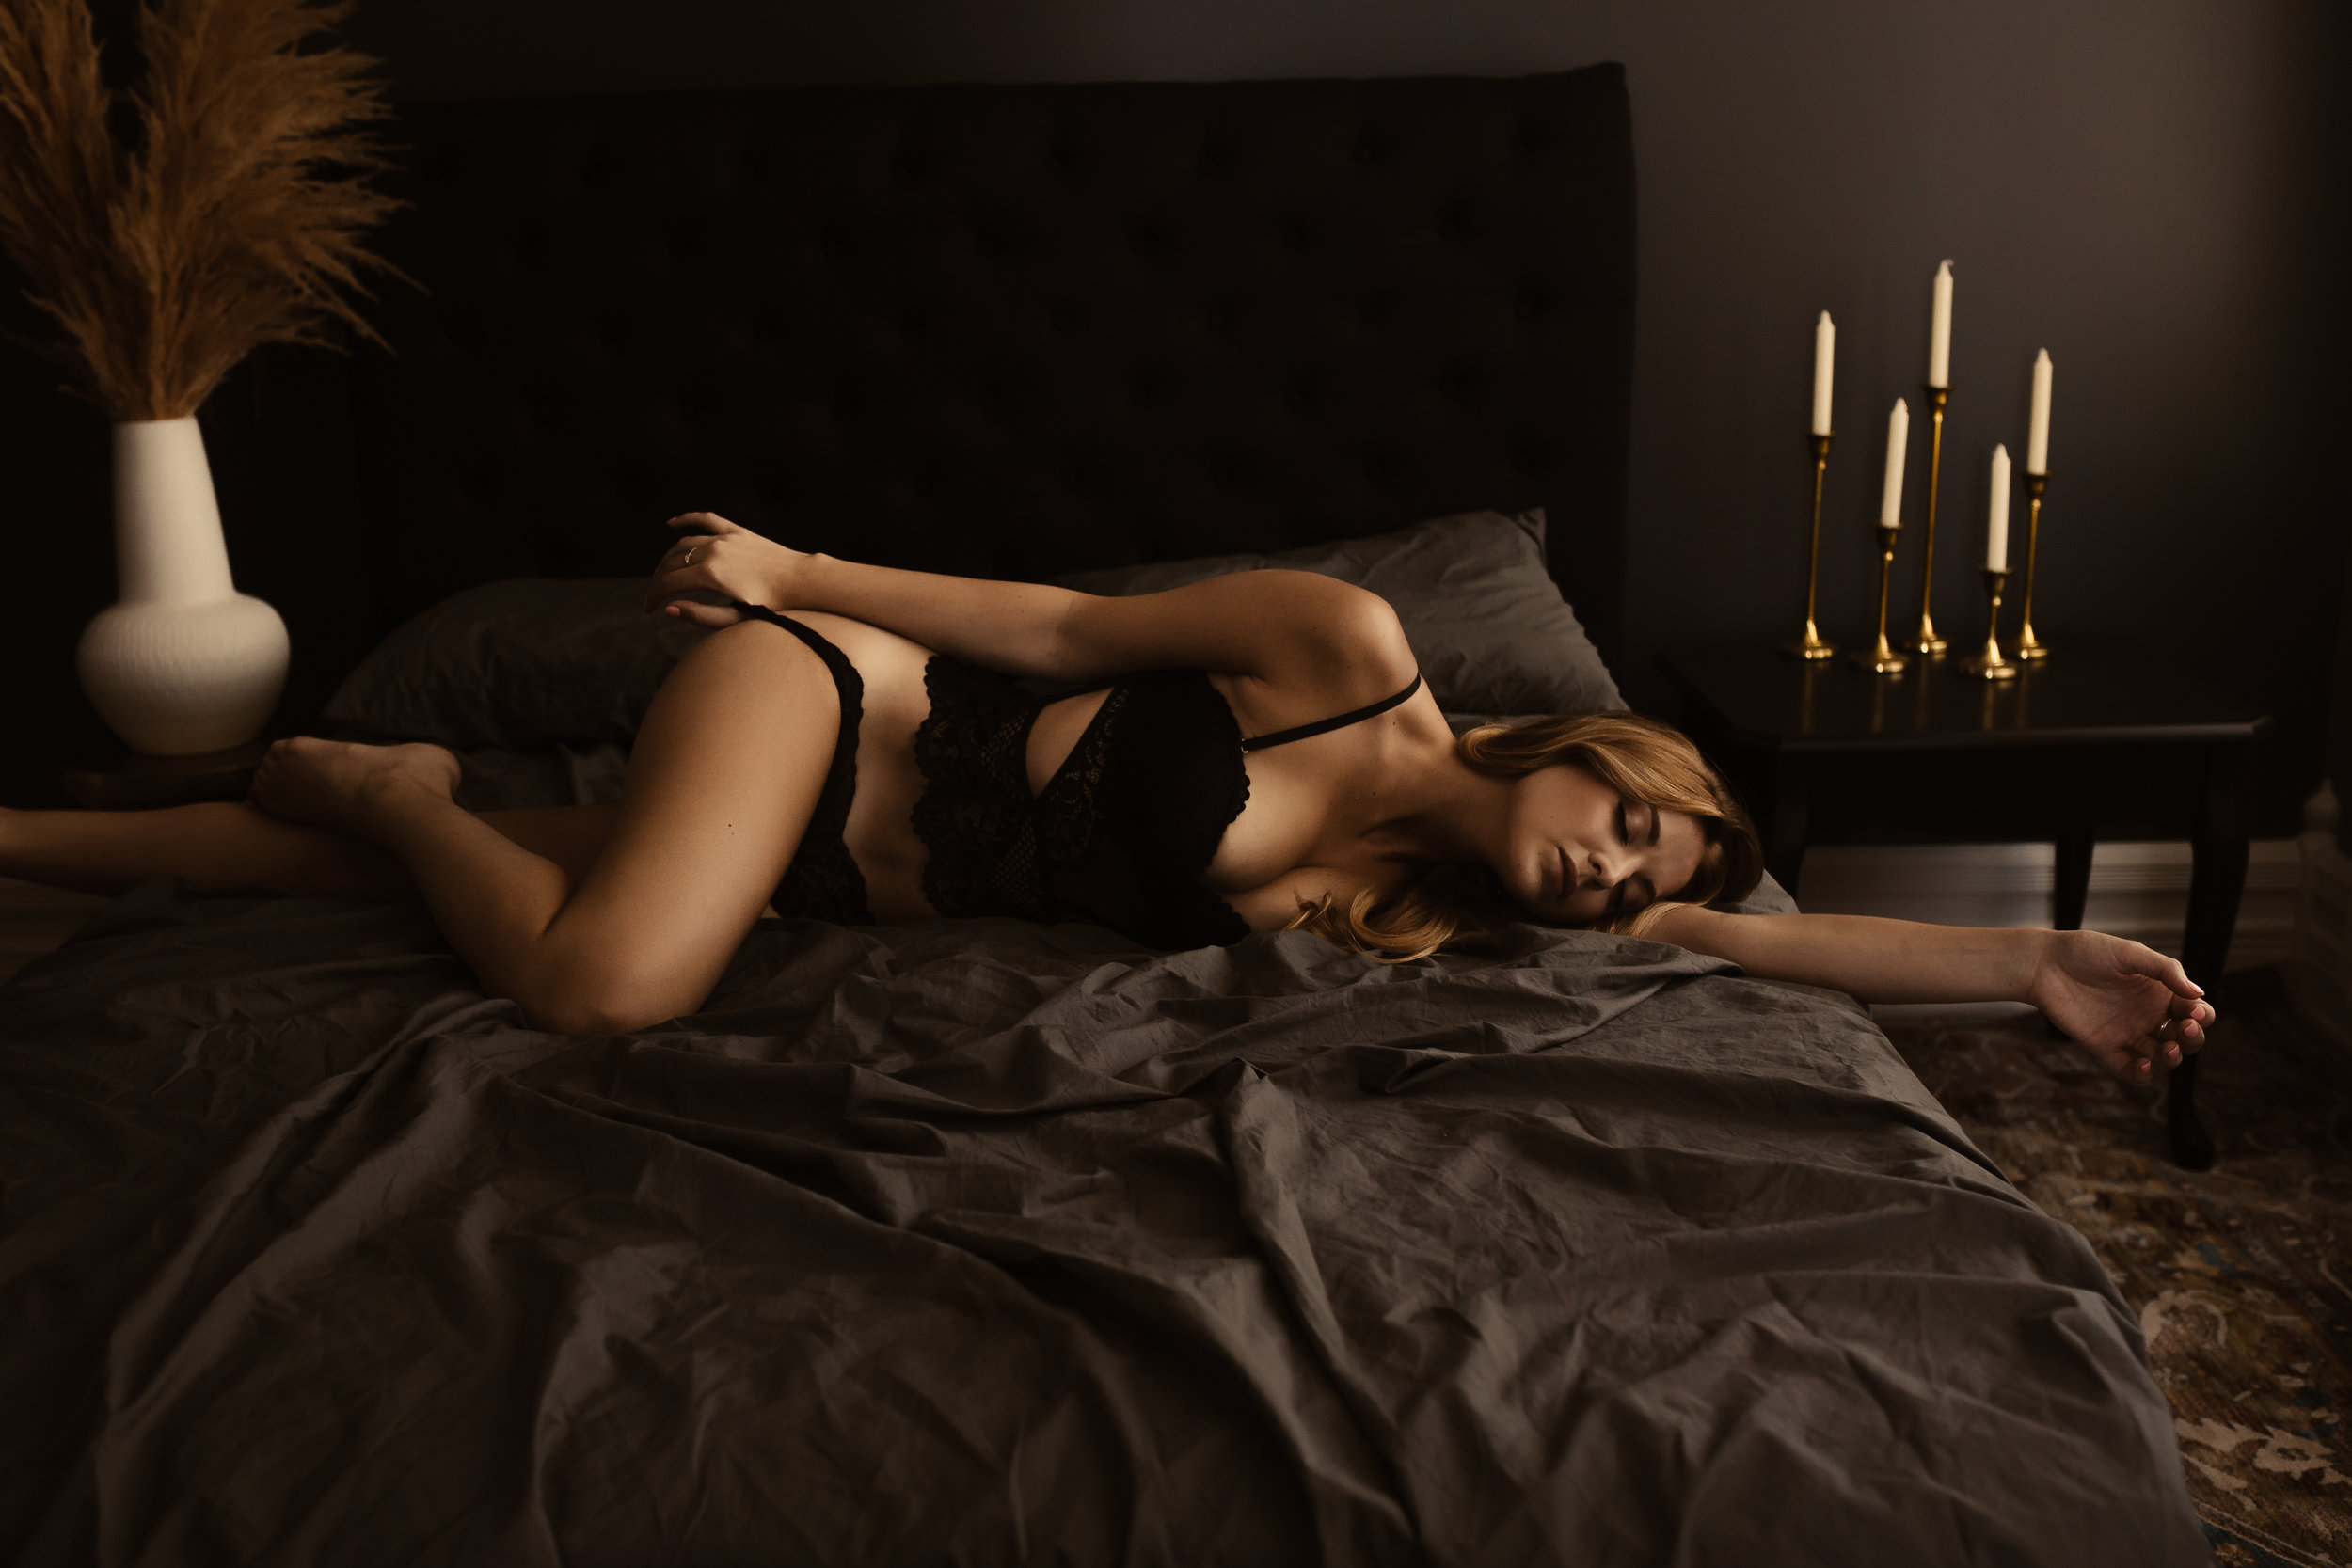 Michigan_Boudoir_Photographer_Butterfly_Boudoir_95.JPG